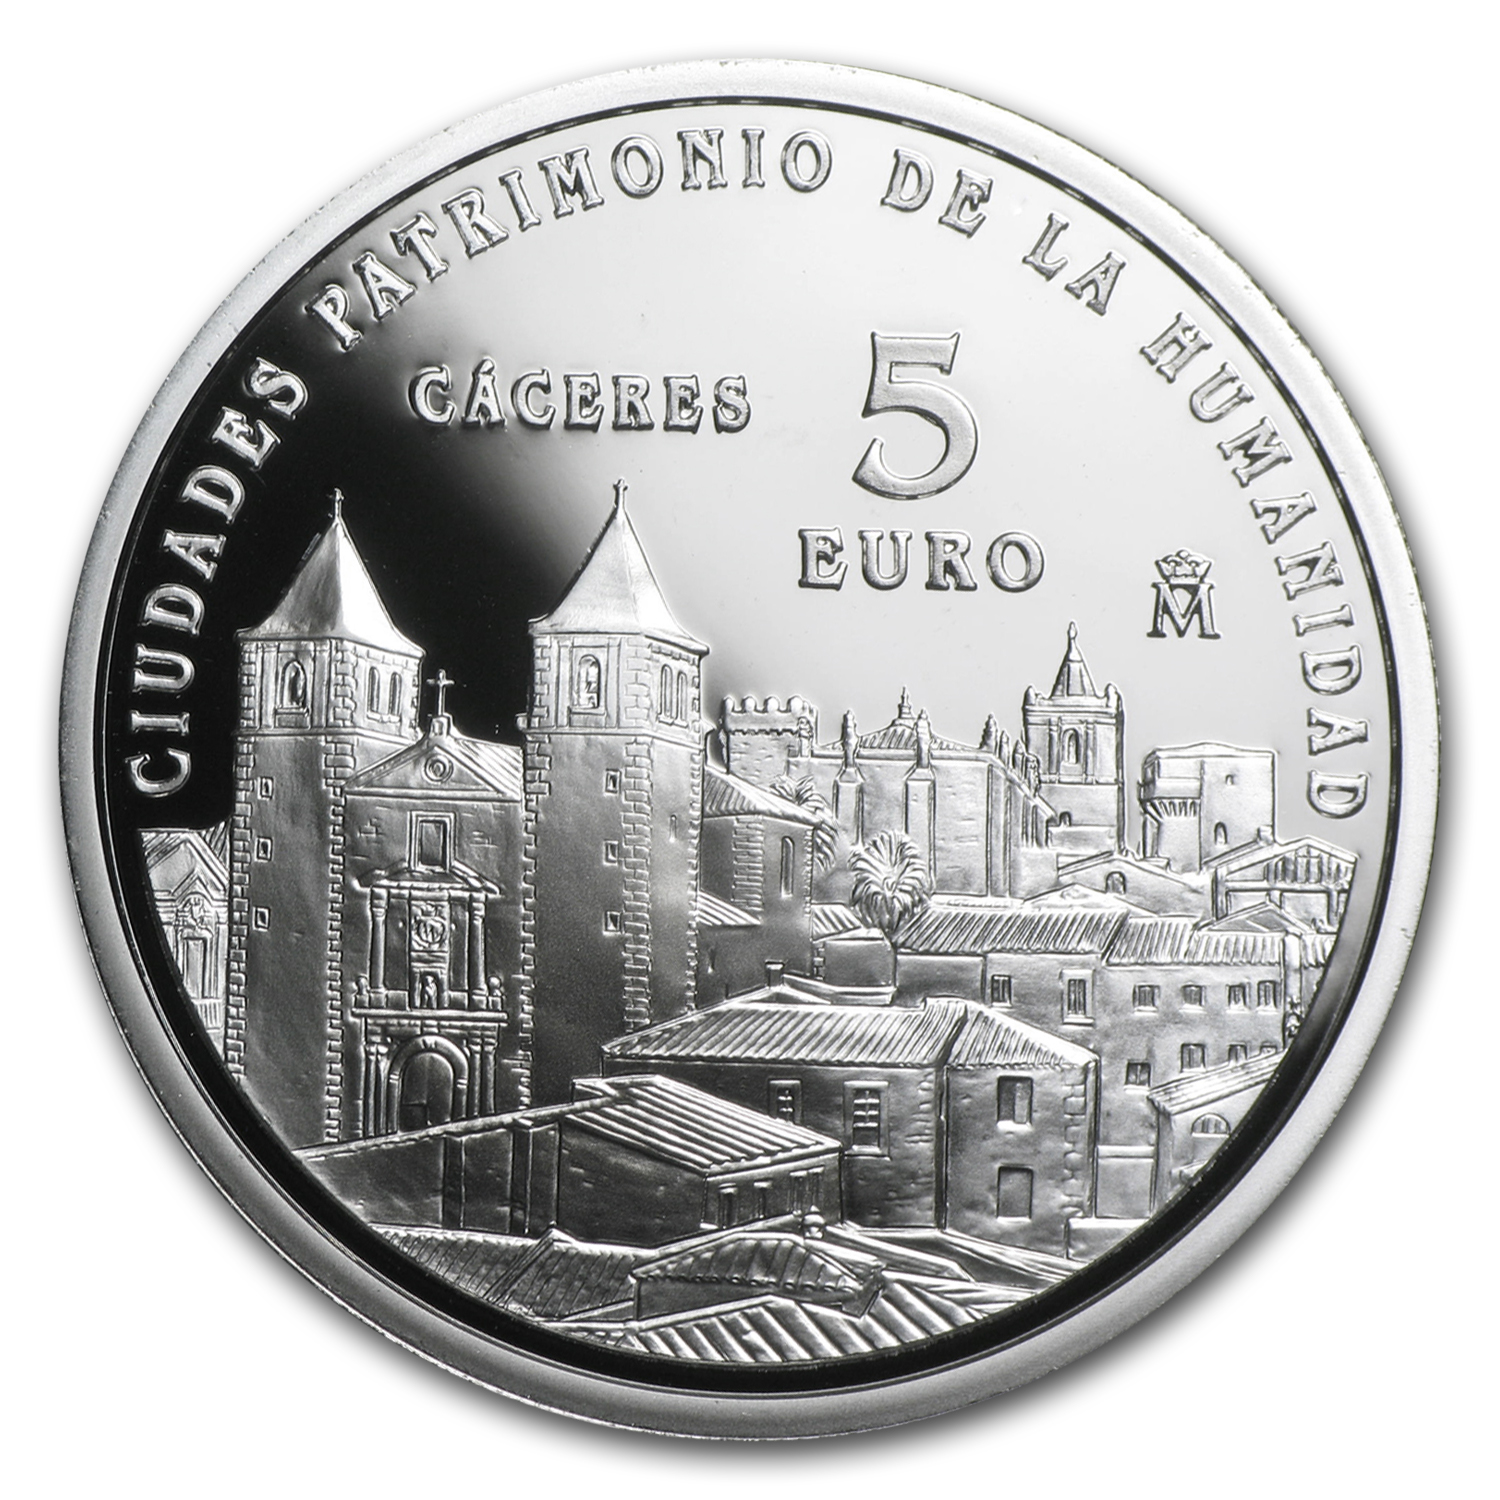 2014 Spain Proof Silver €5 UNESCO Càceres